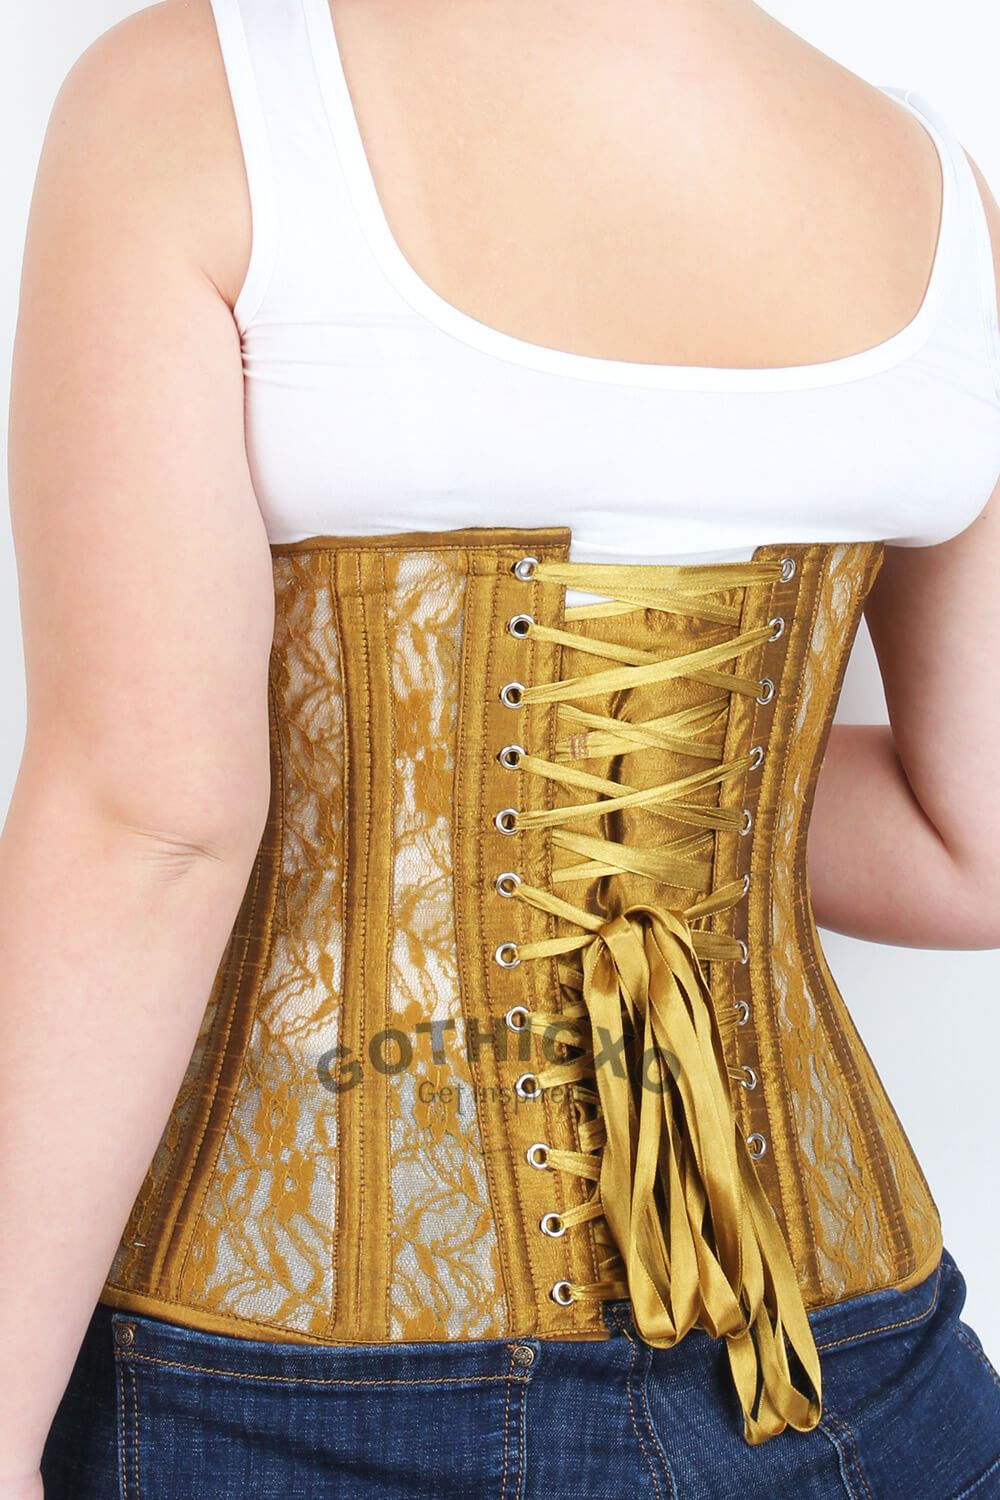 87f59bc48 Plus Size Gold Mesh with Lace Underbust Long Corset. Size Charts. Waist  Training Corset Size Guide